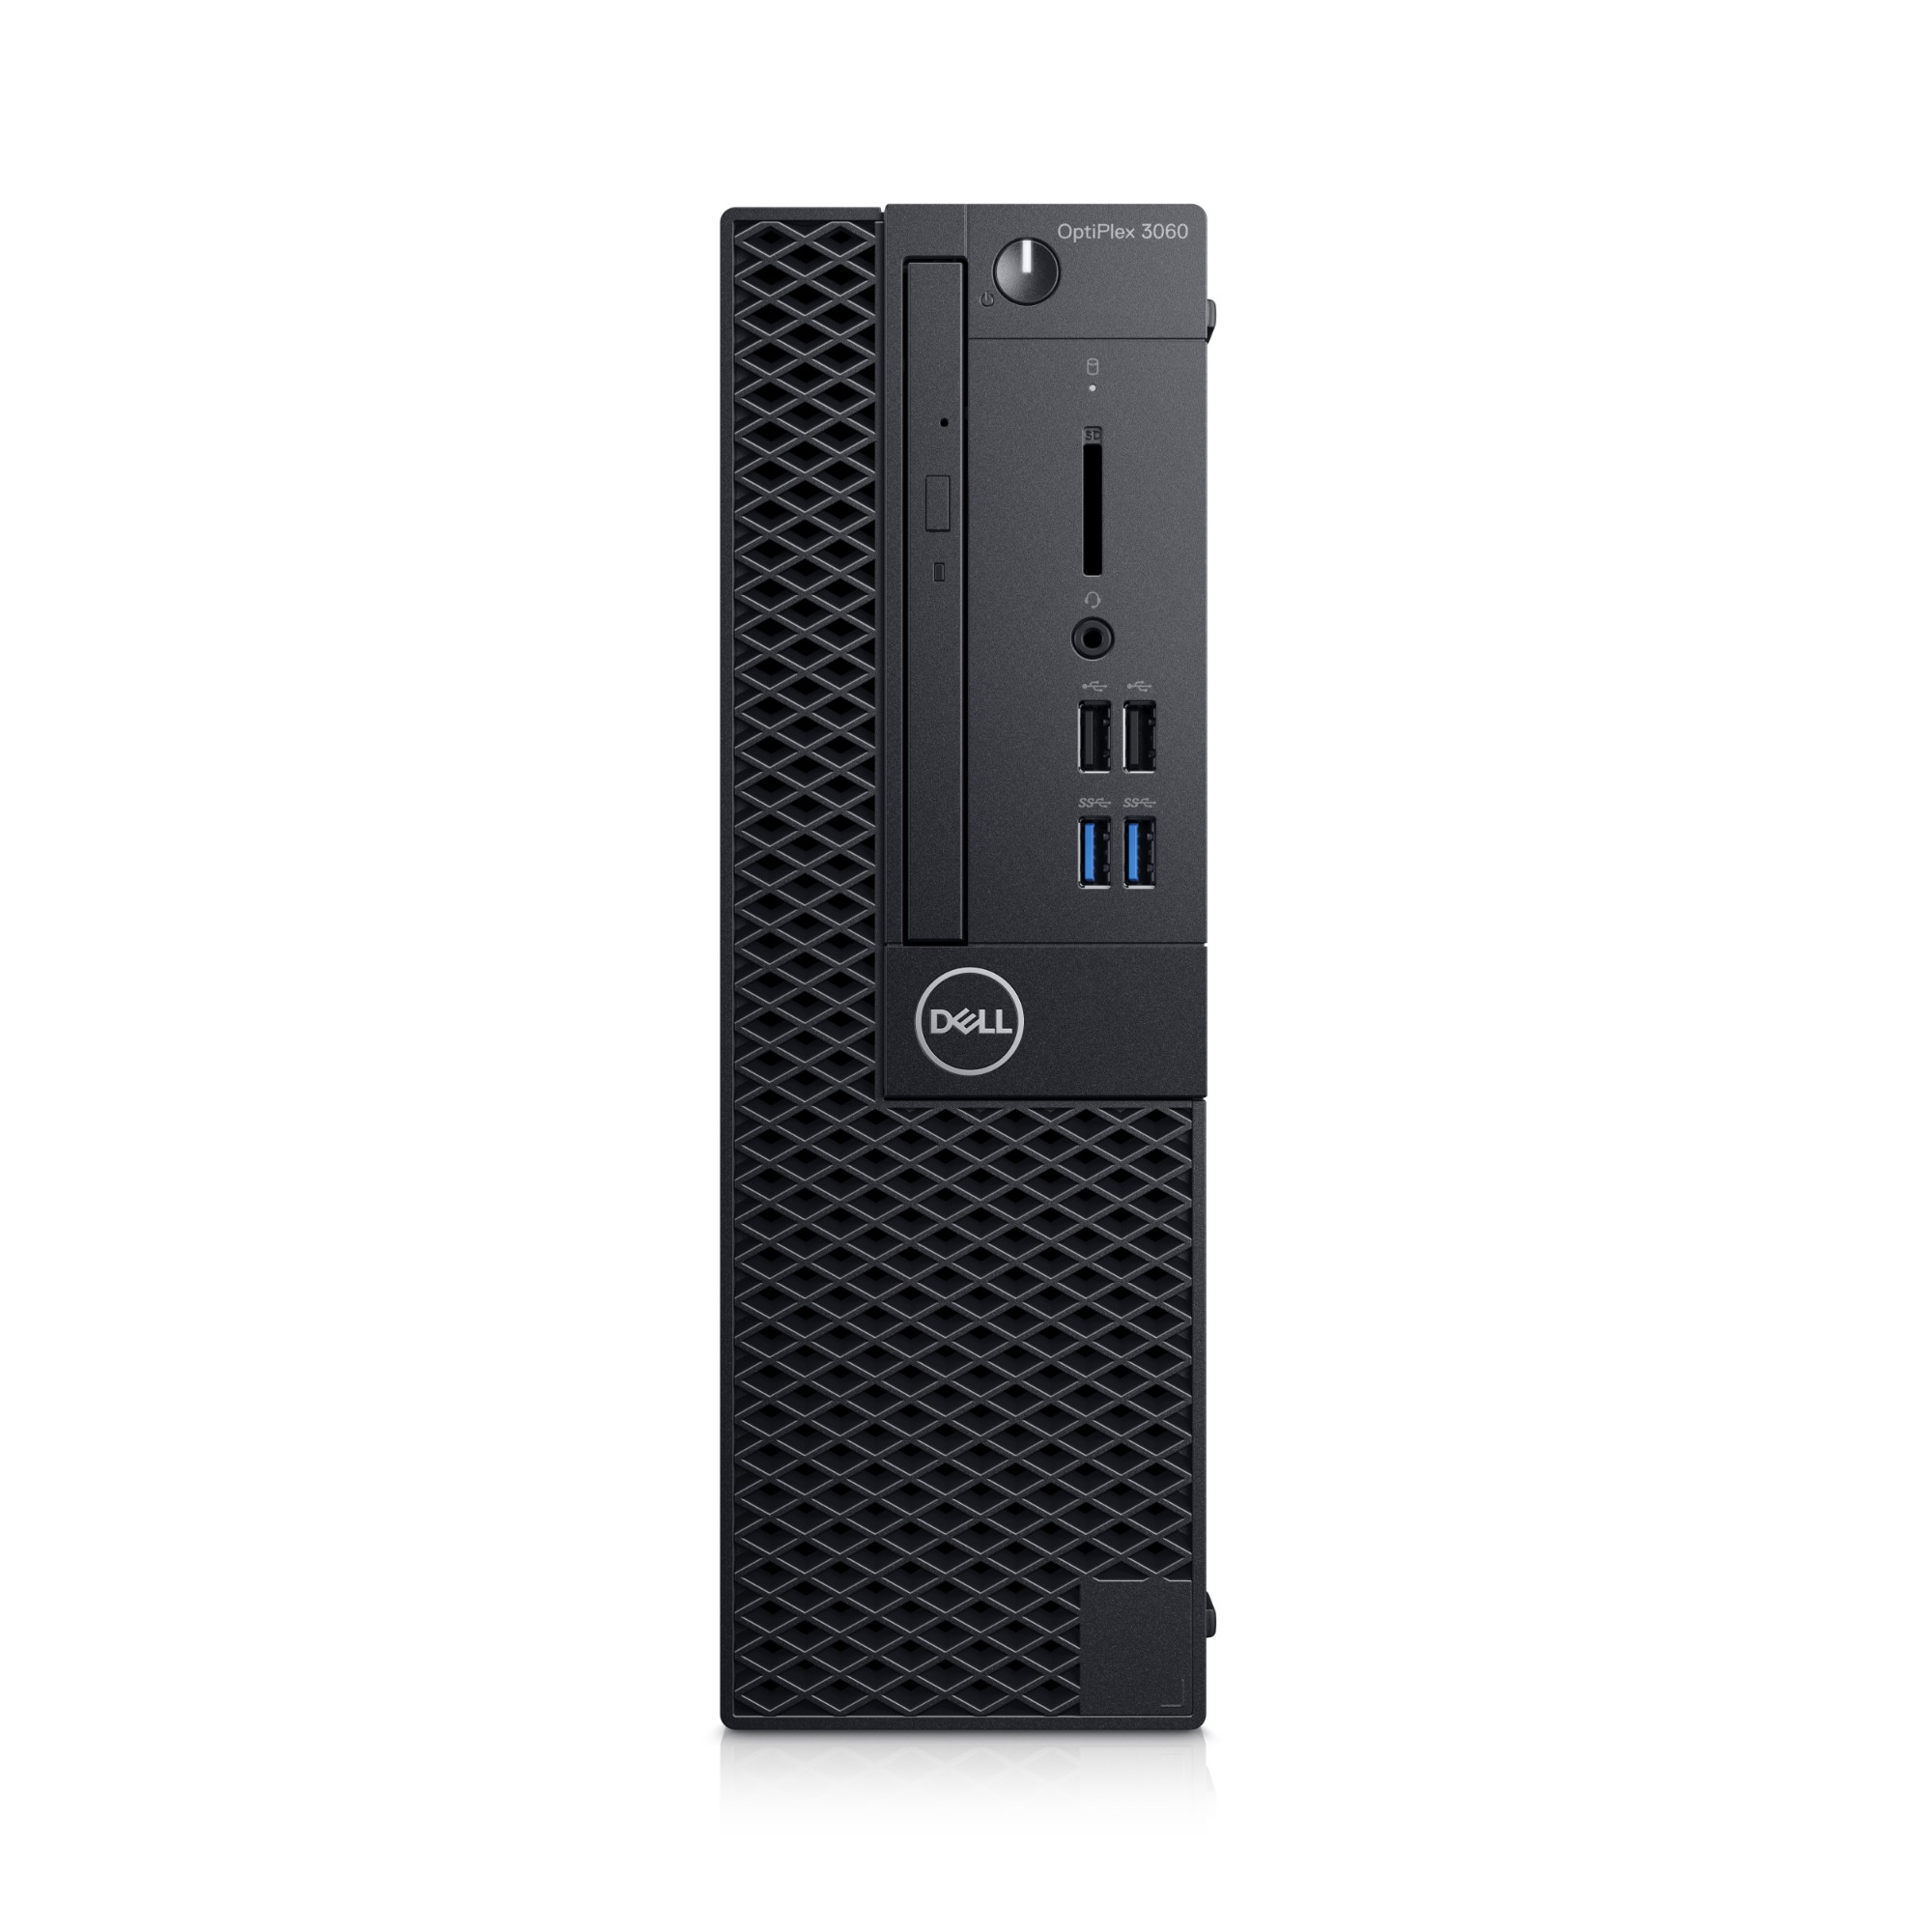 DELL OptiPlex 3060 SFF CR41D Core i3-8100 8GB 256GB SSD Win 10 Pro Black